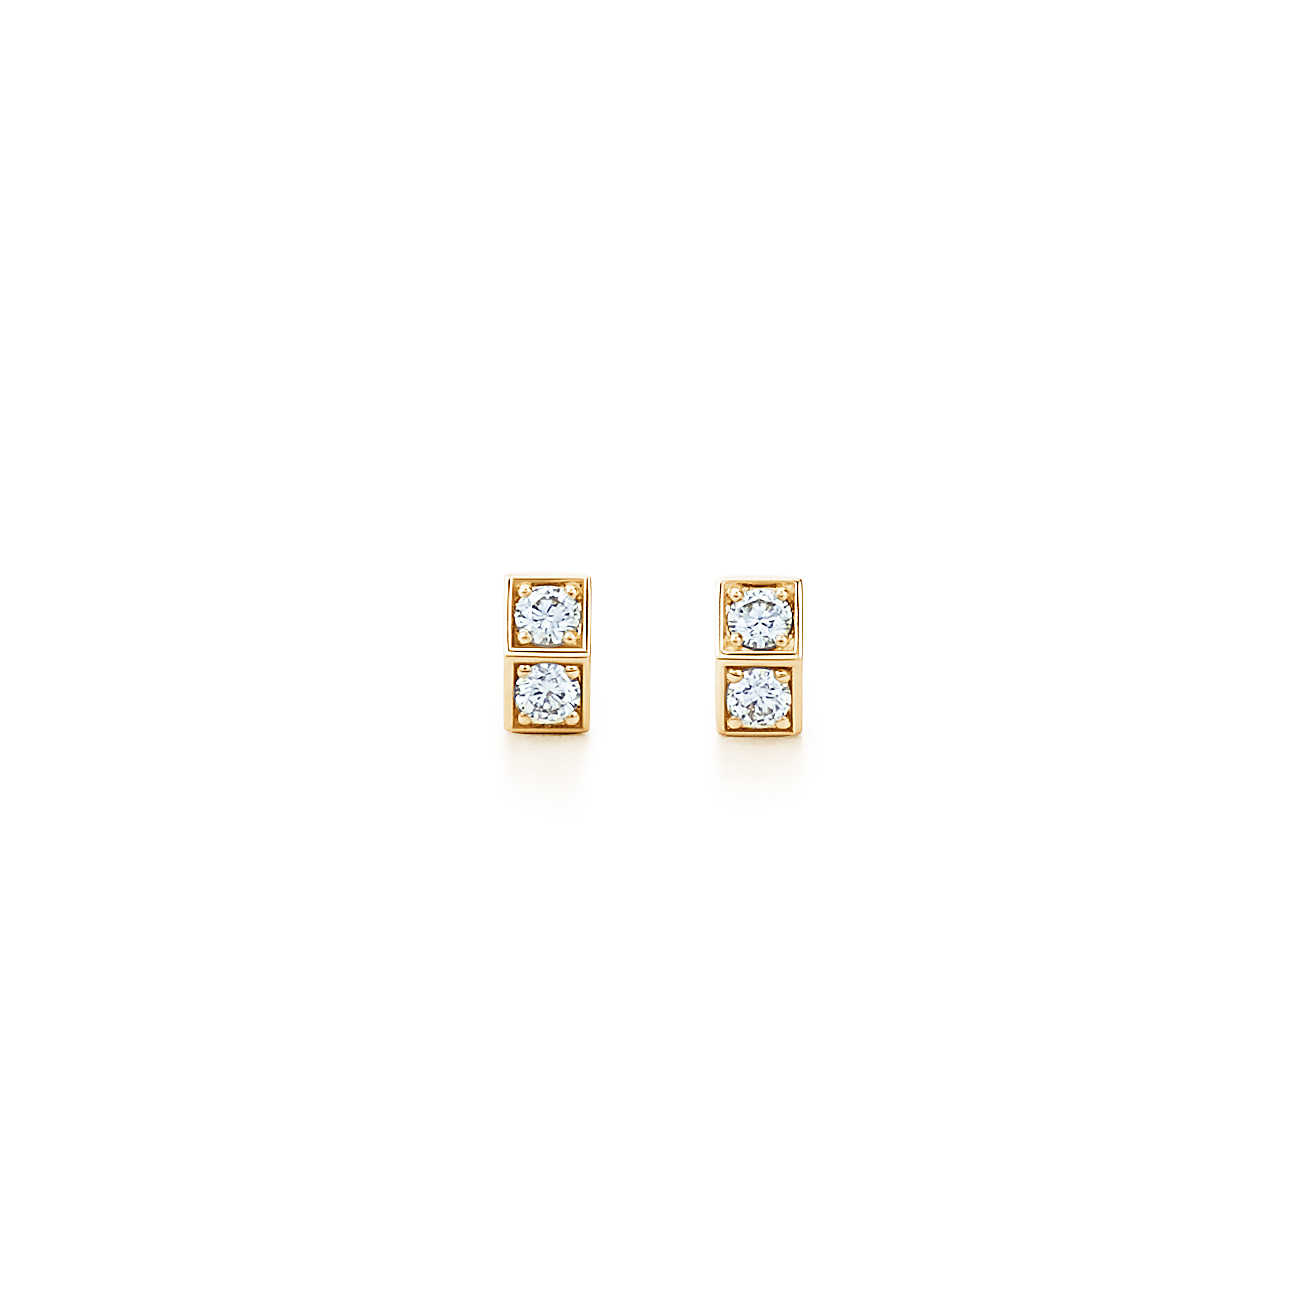 out-of-retirementdiamond-earrings-35727345_960290_ED